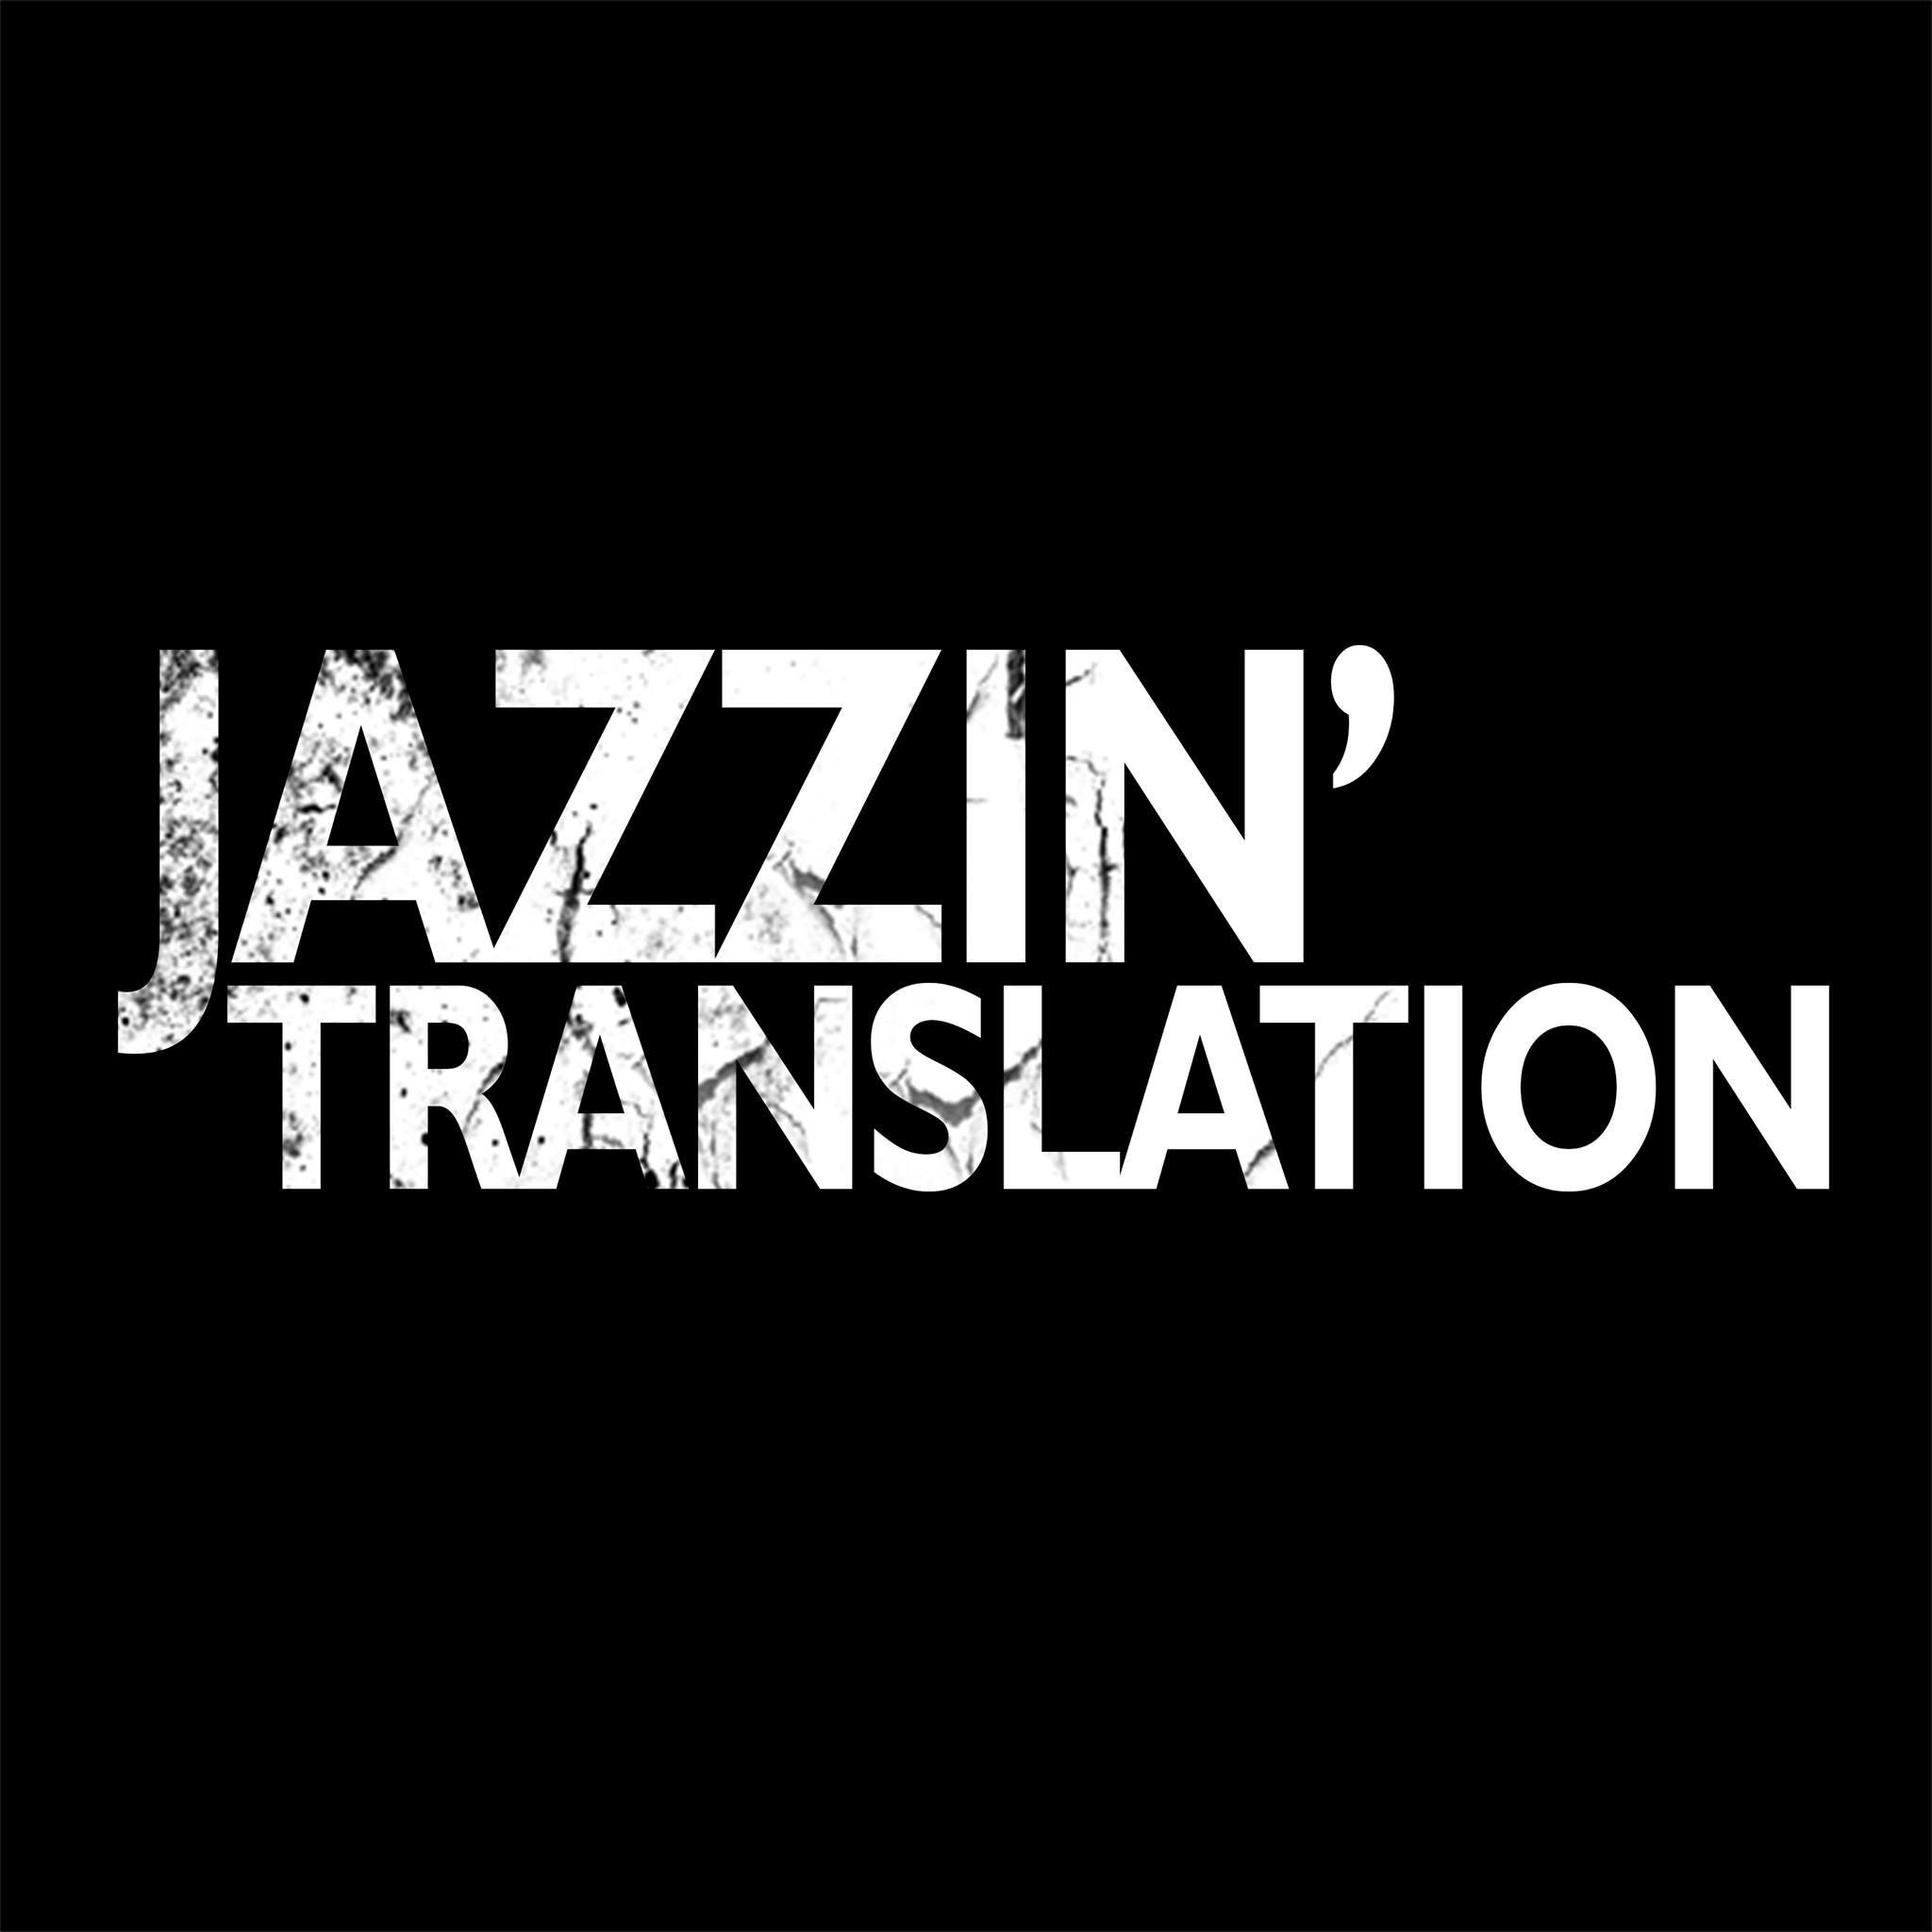 JAZZIN TRANSLATION